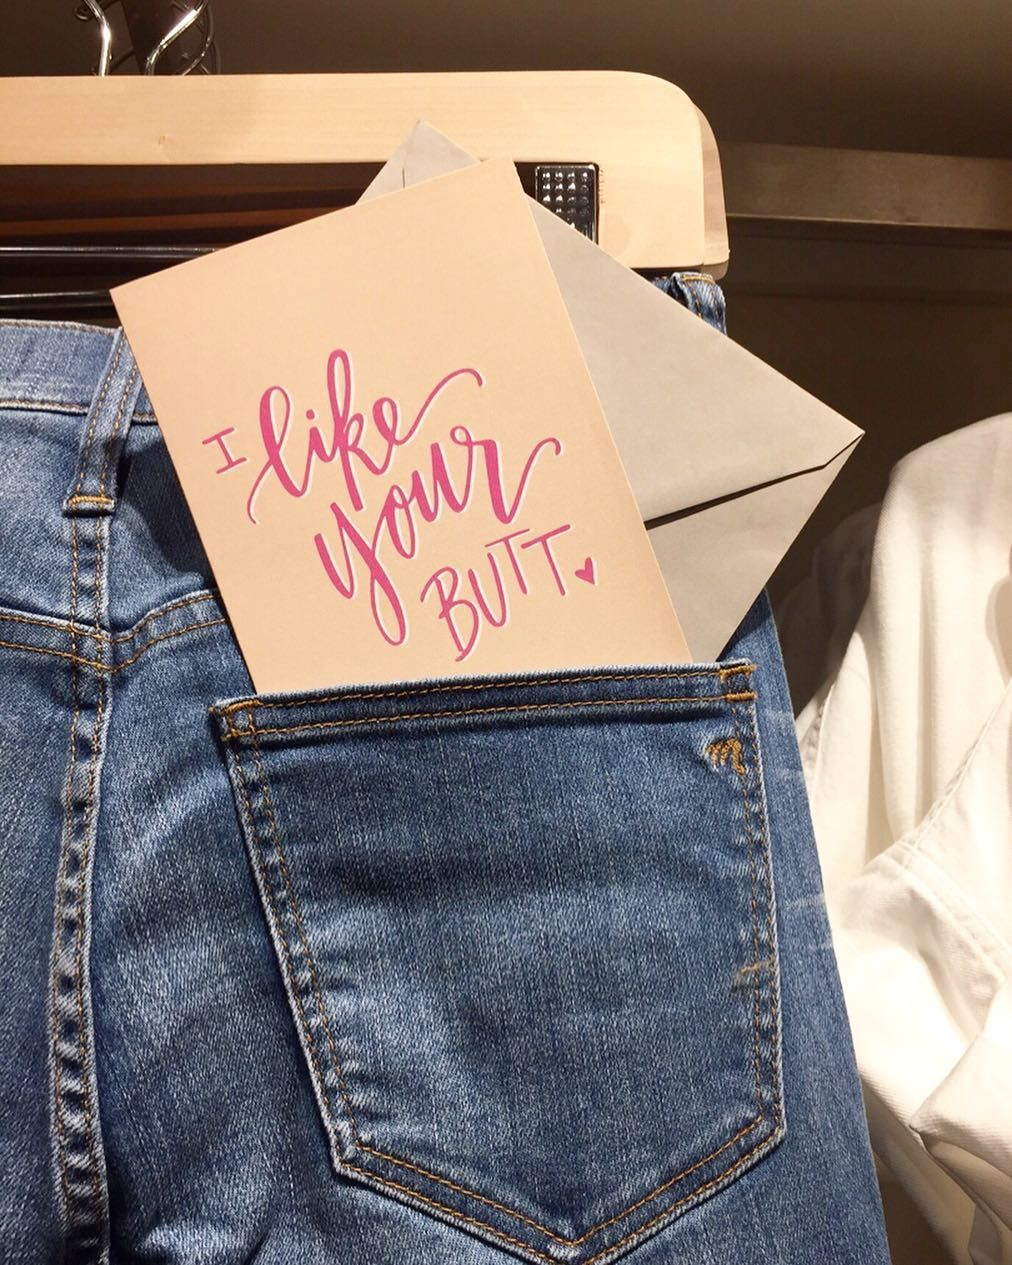 One hour left to shop with us at Madewell Polaris!